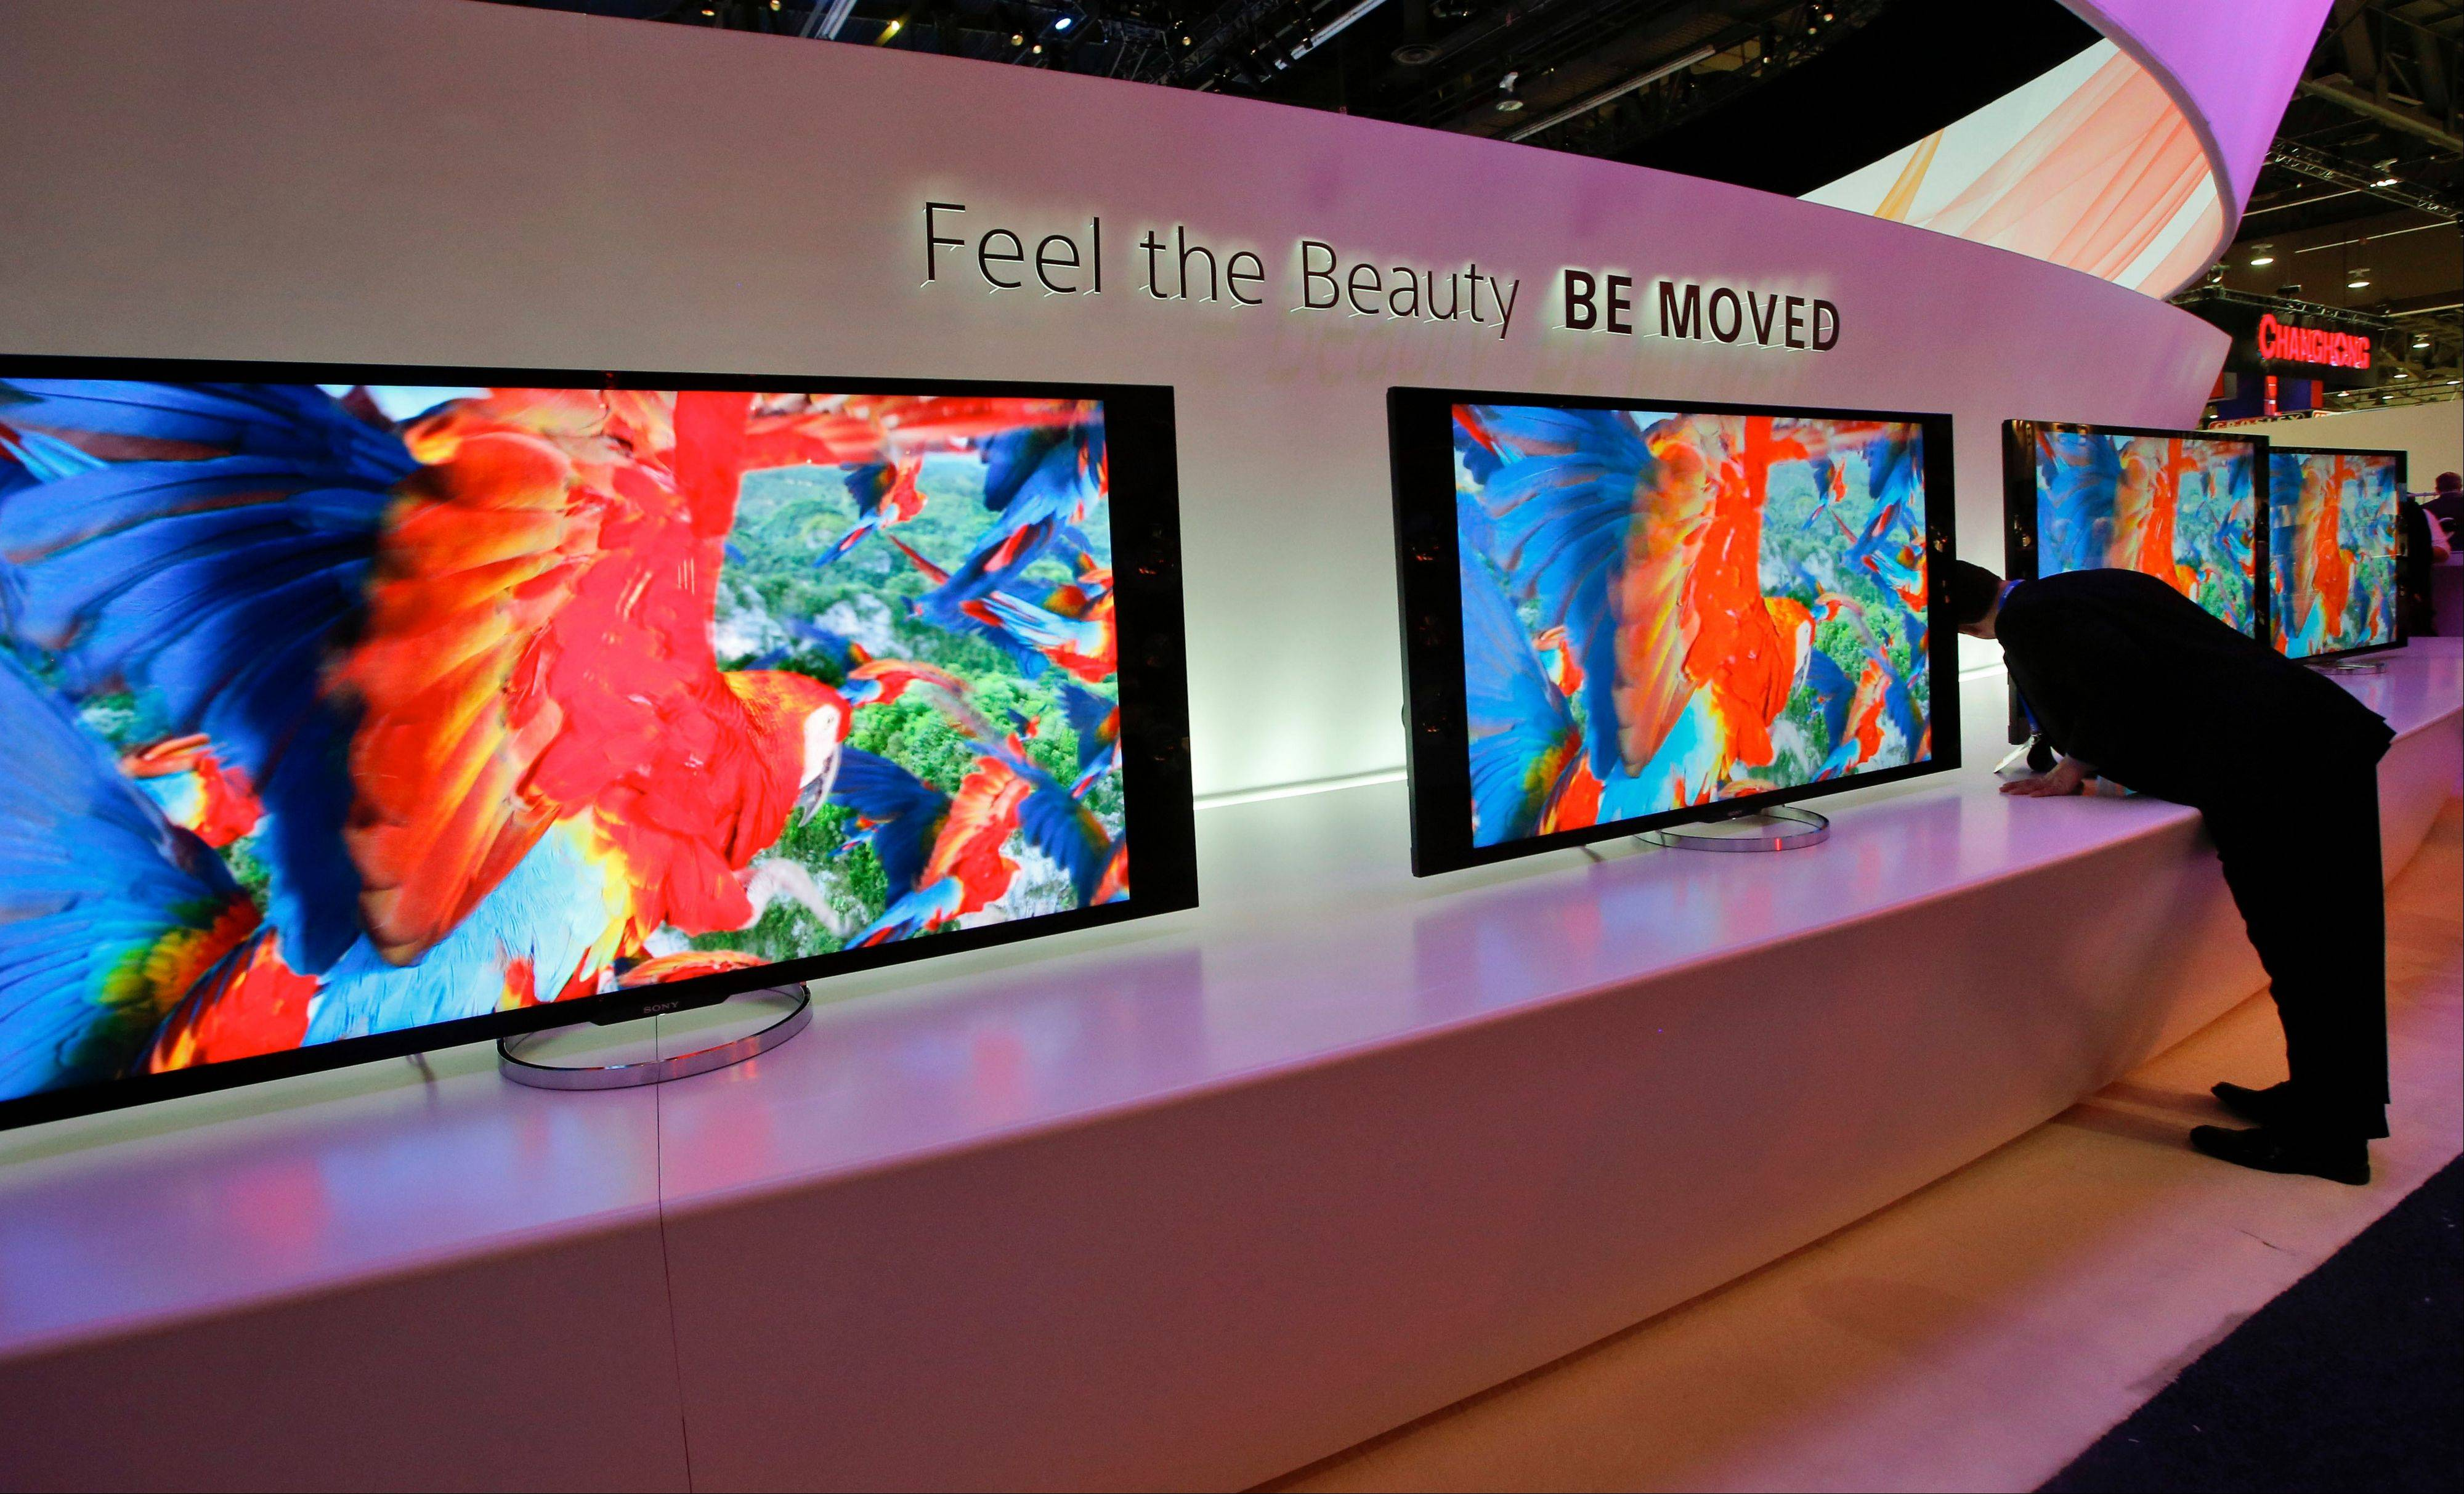 Associated Press Vito Anzalone, far right, looks at the back of Sony�s 4K XBR LED televisions at the Sony booth during a news conference at the International Consumer Electronics Show in Las Vegas, Monday.